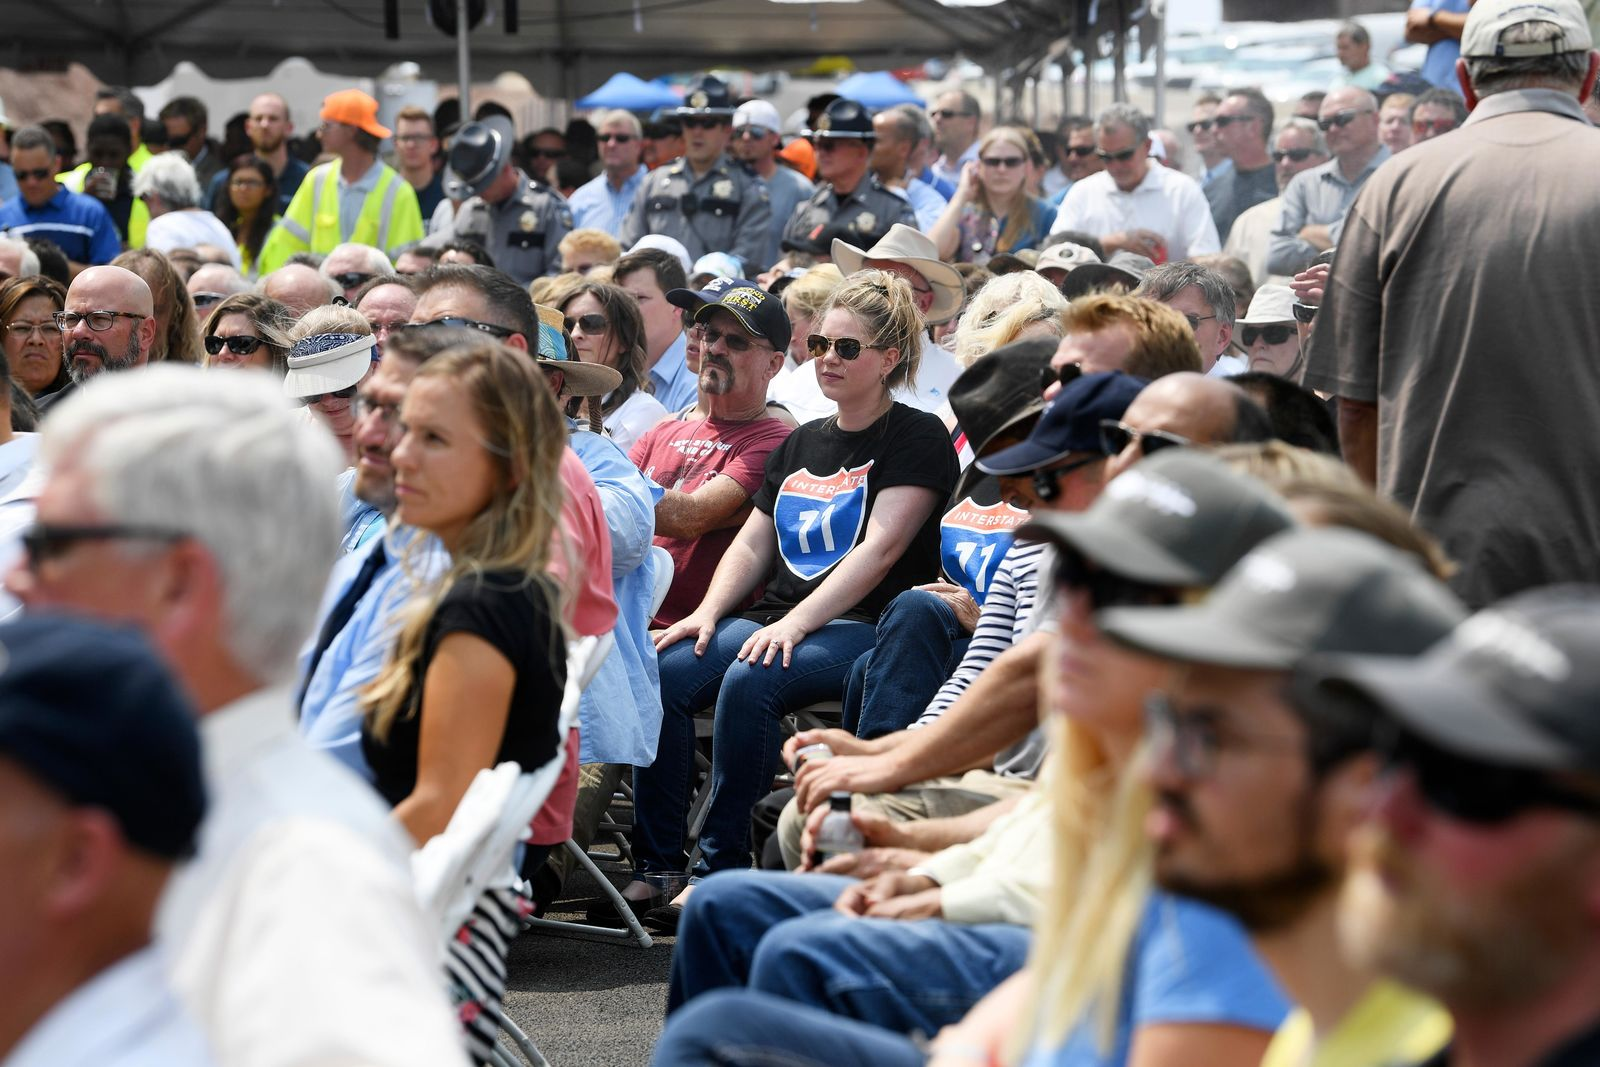 Attendees listen to speeches during the grand opening of a new section of Interstate 11 Thursday, August 9, 2018, in Boulder City. The section, also referred to as the Boulder City Bypass, marks the official start of the I-11 project between Las Vegas and Phoenix. CREDIT: Sam Morris/Las Vegas News Bureau